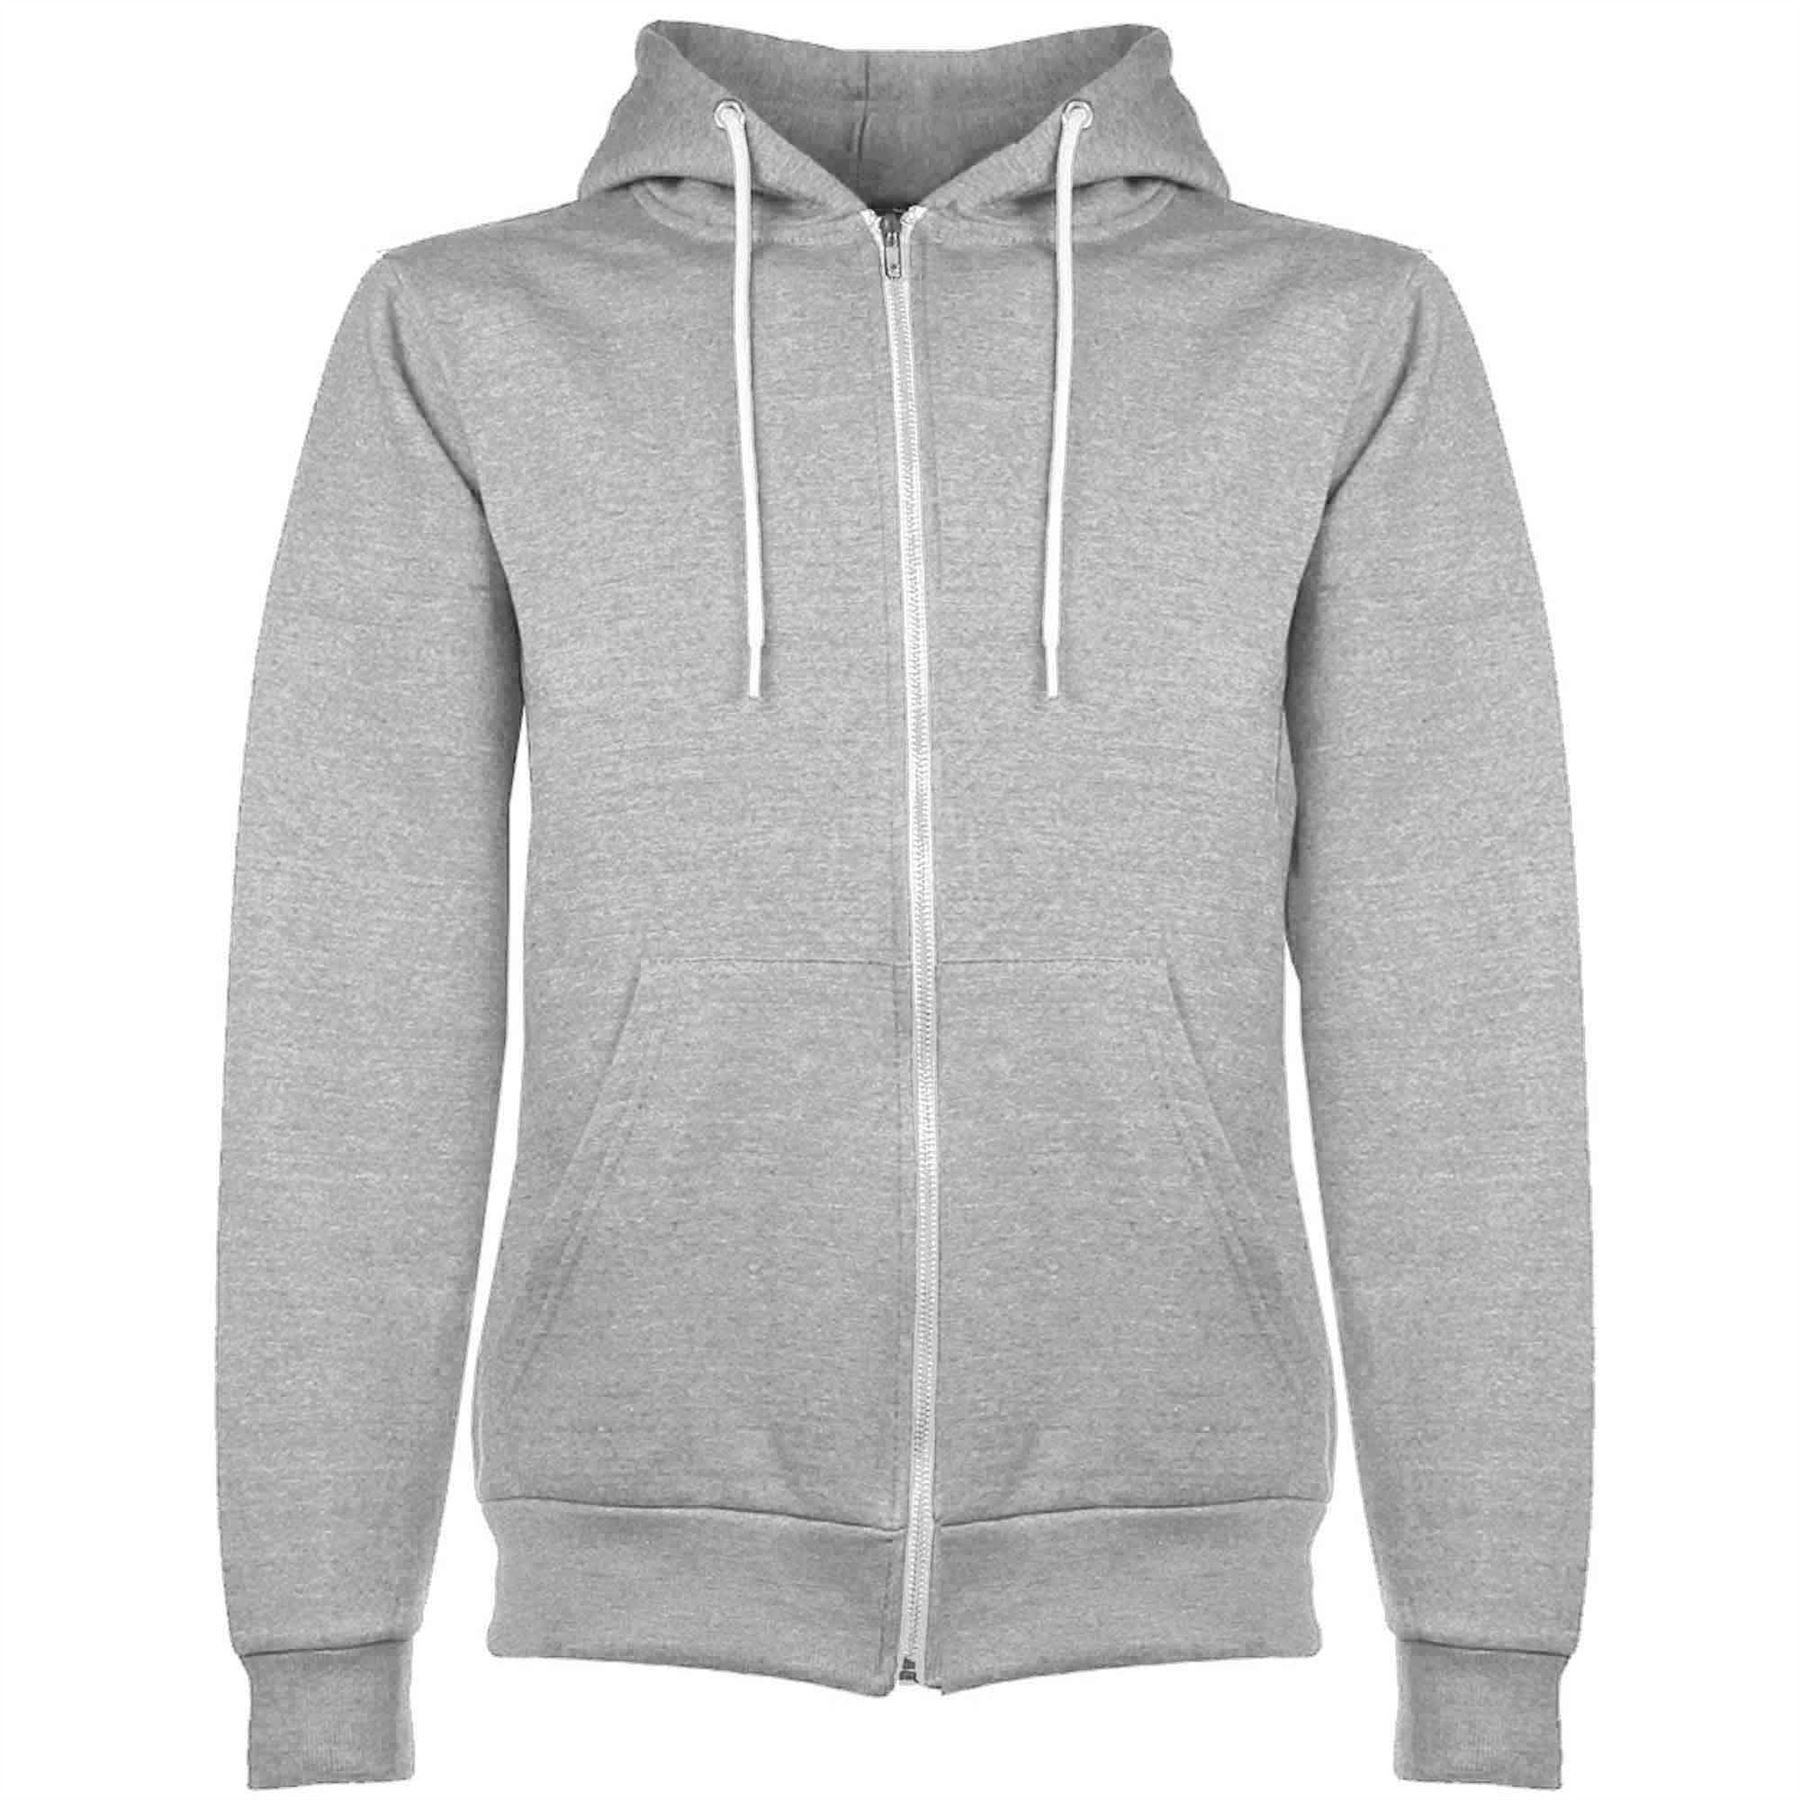 Find great deals on eBay for plain hooded sweatshirts. Shop with confidence.